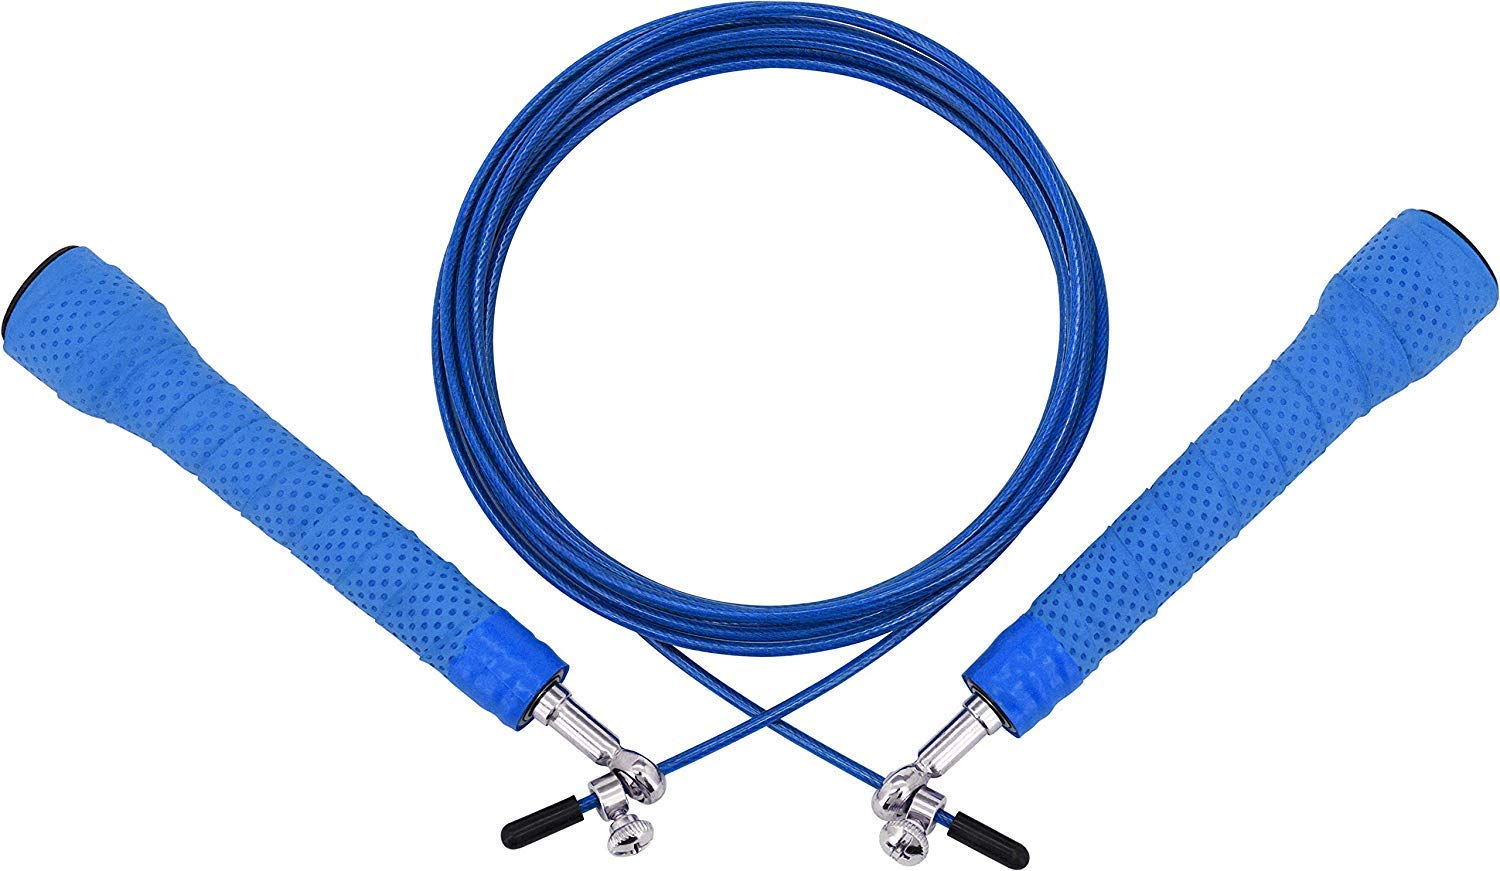 RDX Skipping Rope Gymnastics Fitness Adjustable Gym PVC Jump MMA Boxing Metal Cable Workout Speed Fat Loss Weight Jumping Exercise High Intensity Interval Training